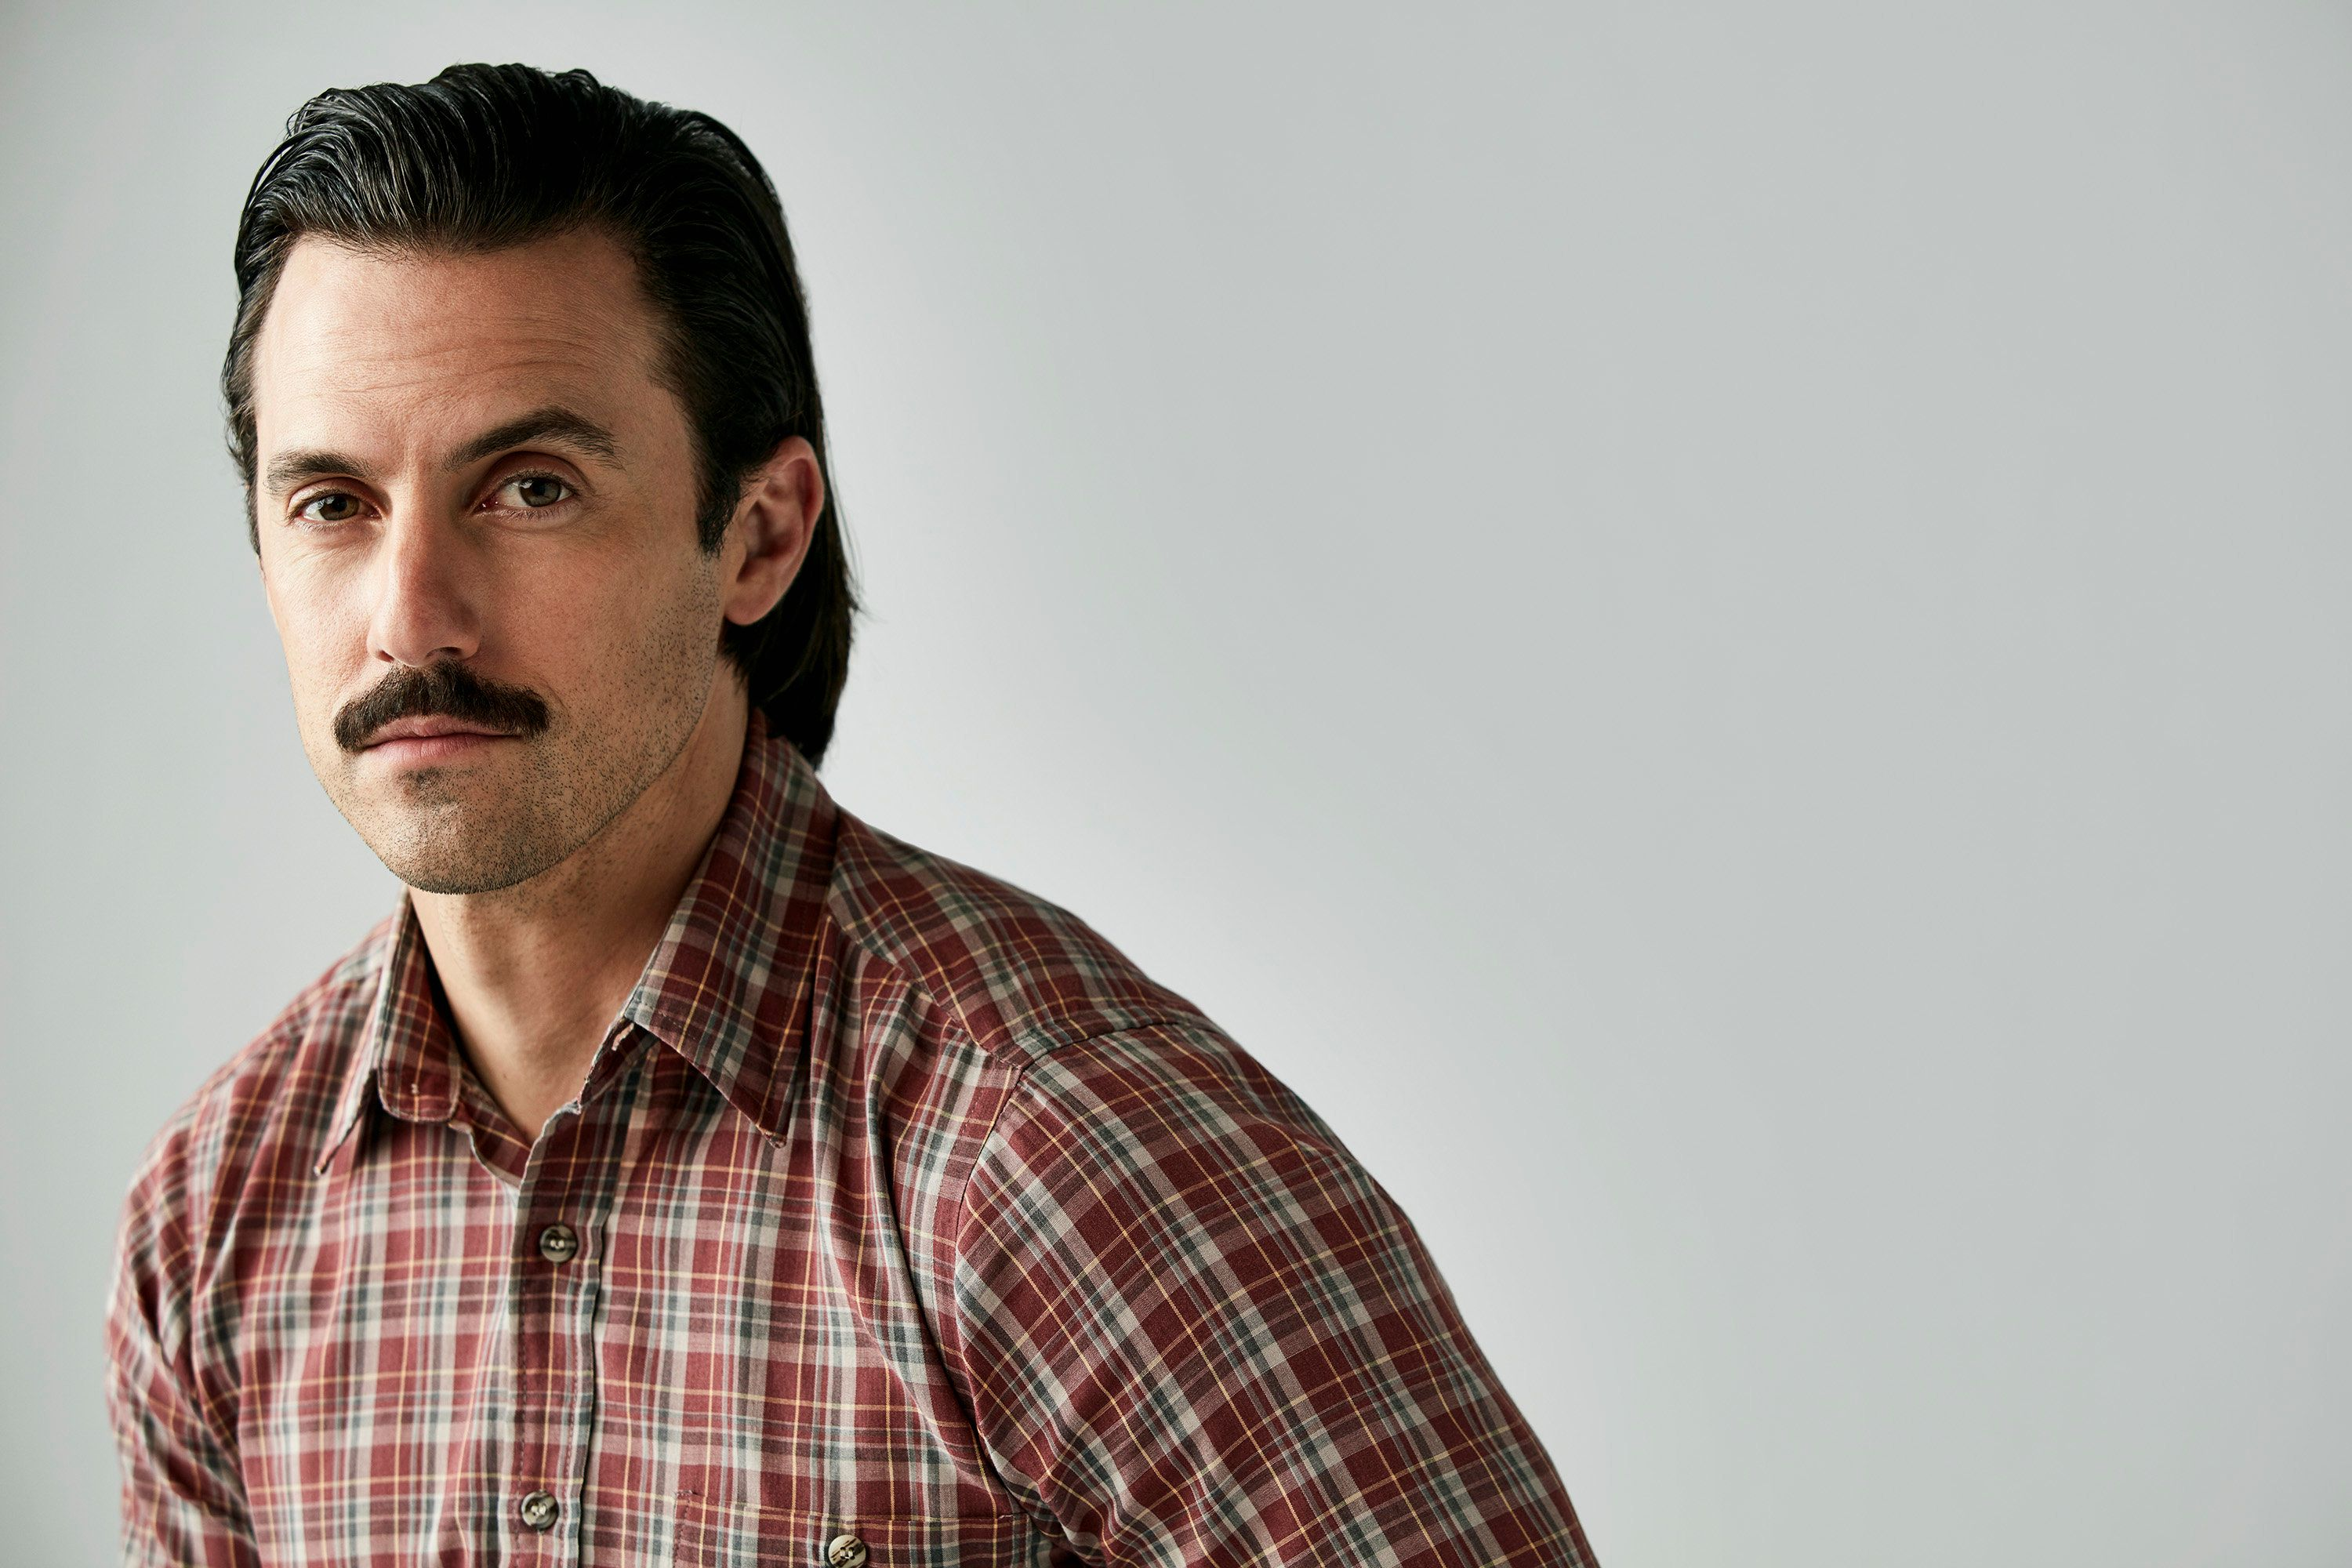 THIS IS US -- Season: 2 --  Pictured: Milo Ventimiglia as Jack -- (Photo by: Maarten de Boer/NBC/NBCU Photo Bank via Getty Images)